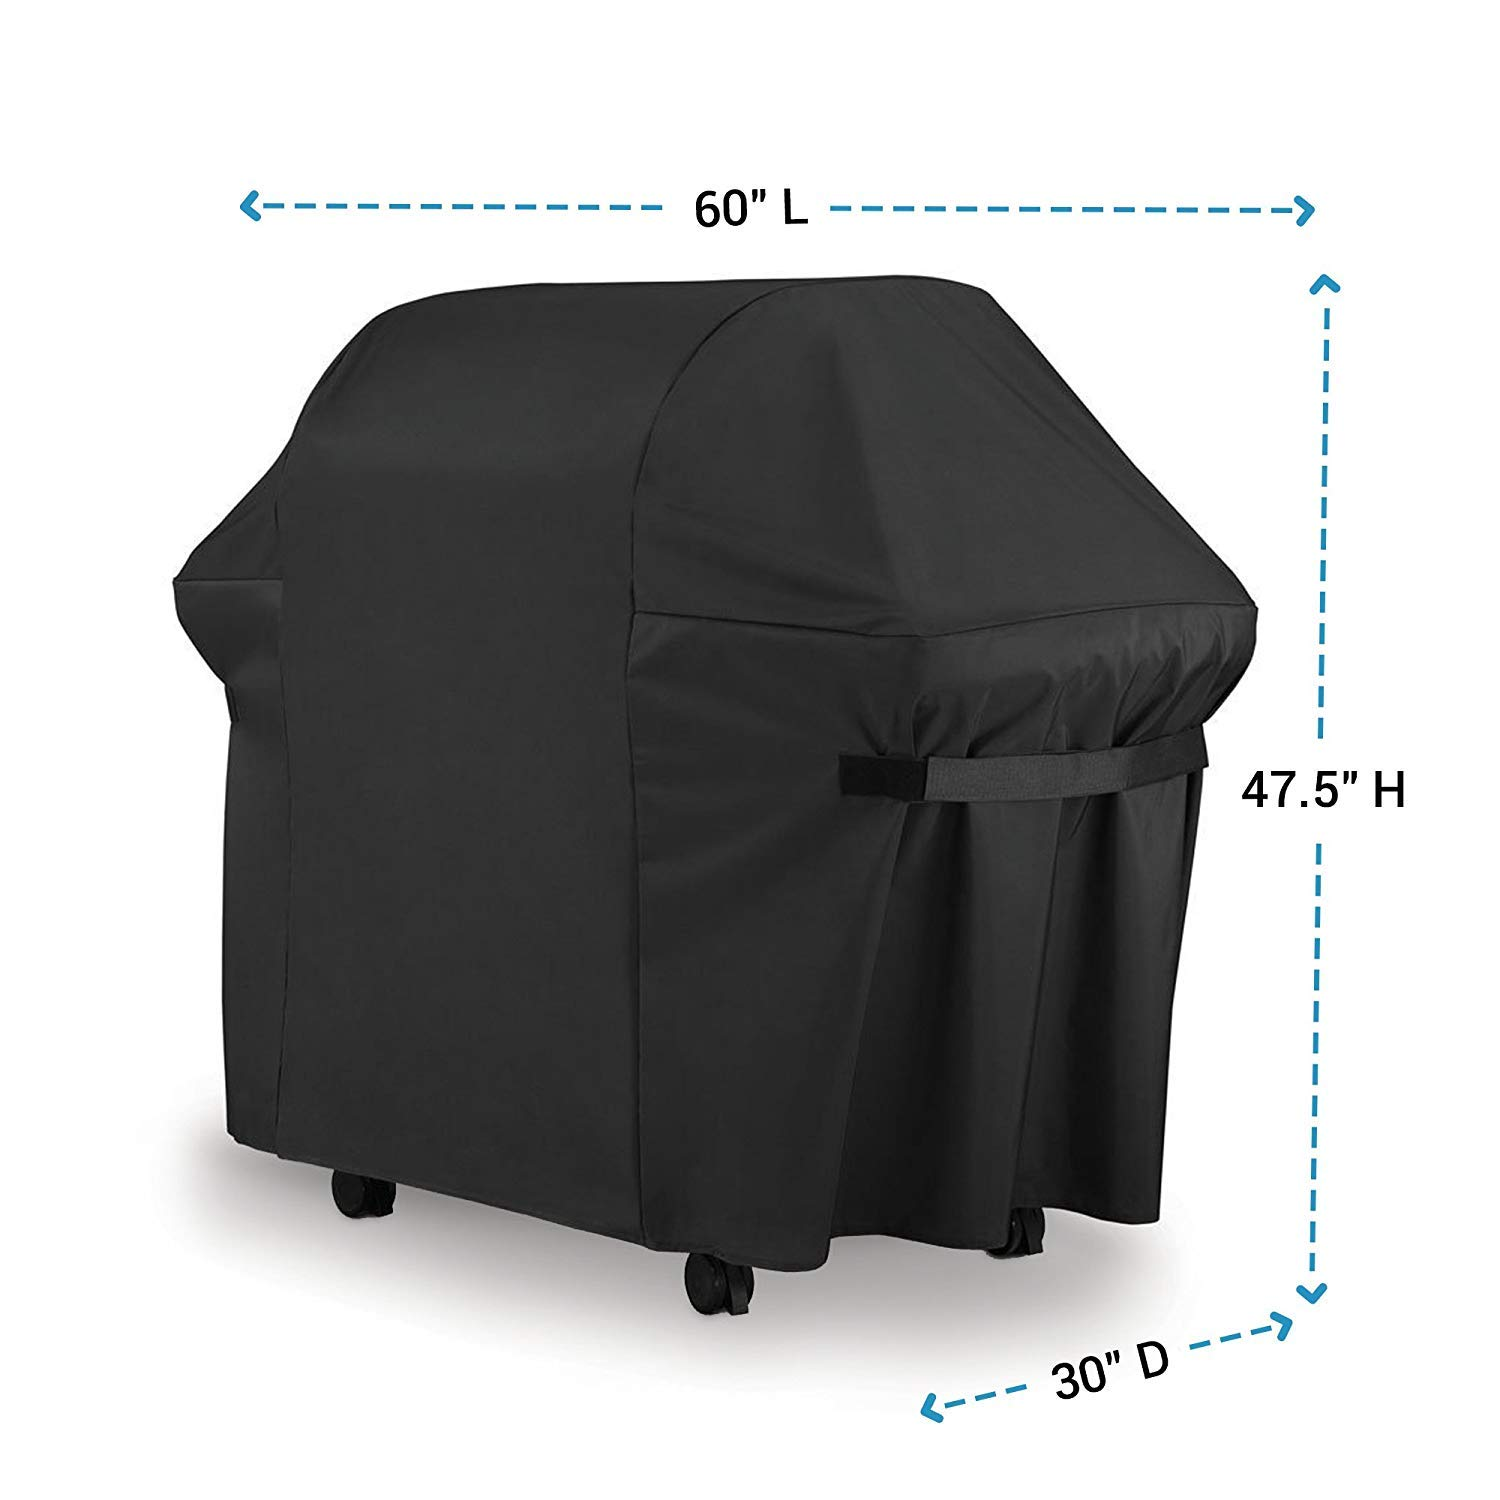 BBQ Gas Grill Cover 7107 for Weber: 44x60 in Heavy Duty Waterproof & Weather Resistant Genesis & Spirit Series Outdoor Barbeque Grill Covers by LiBa